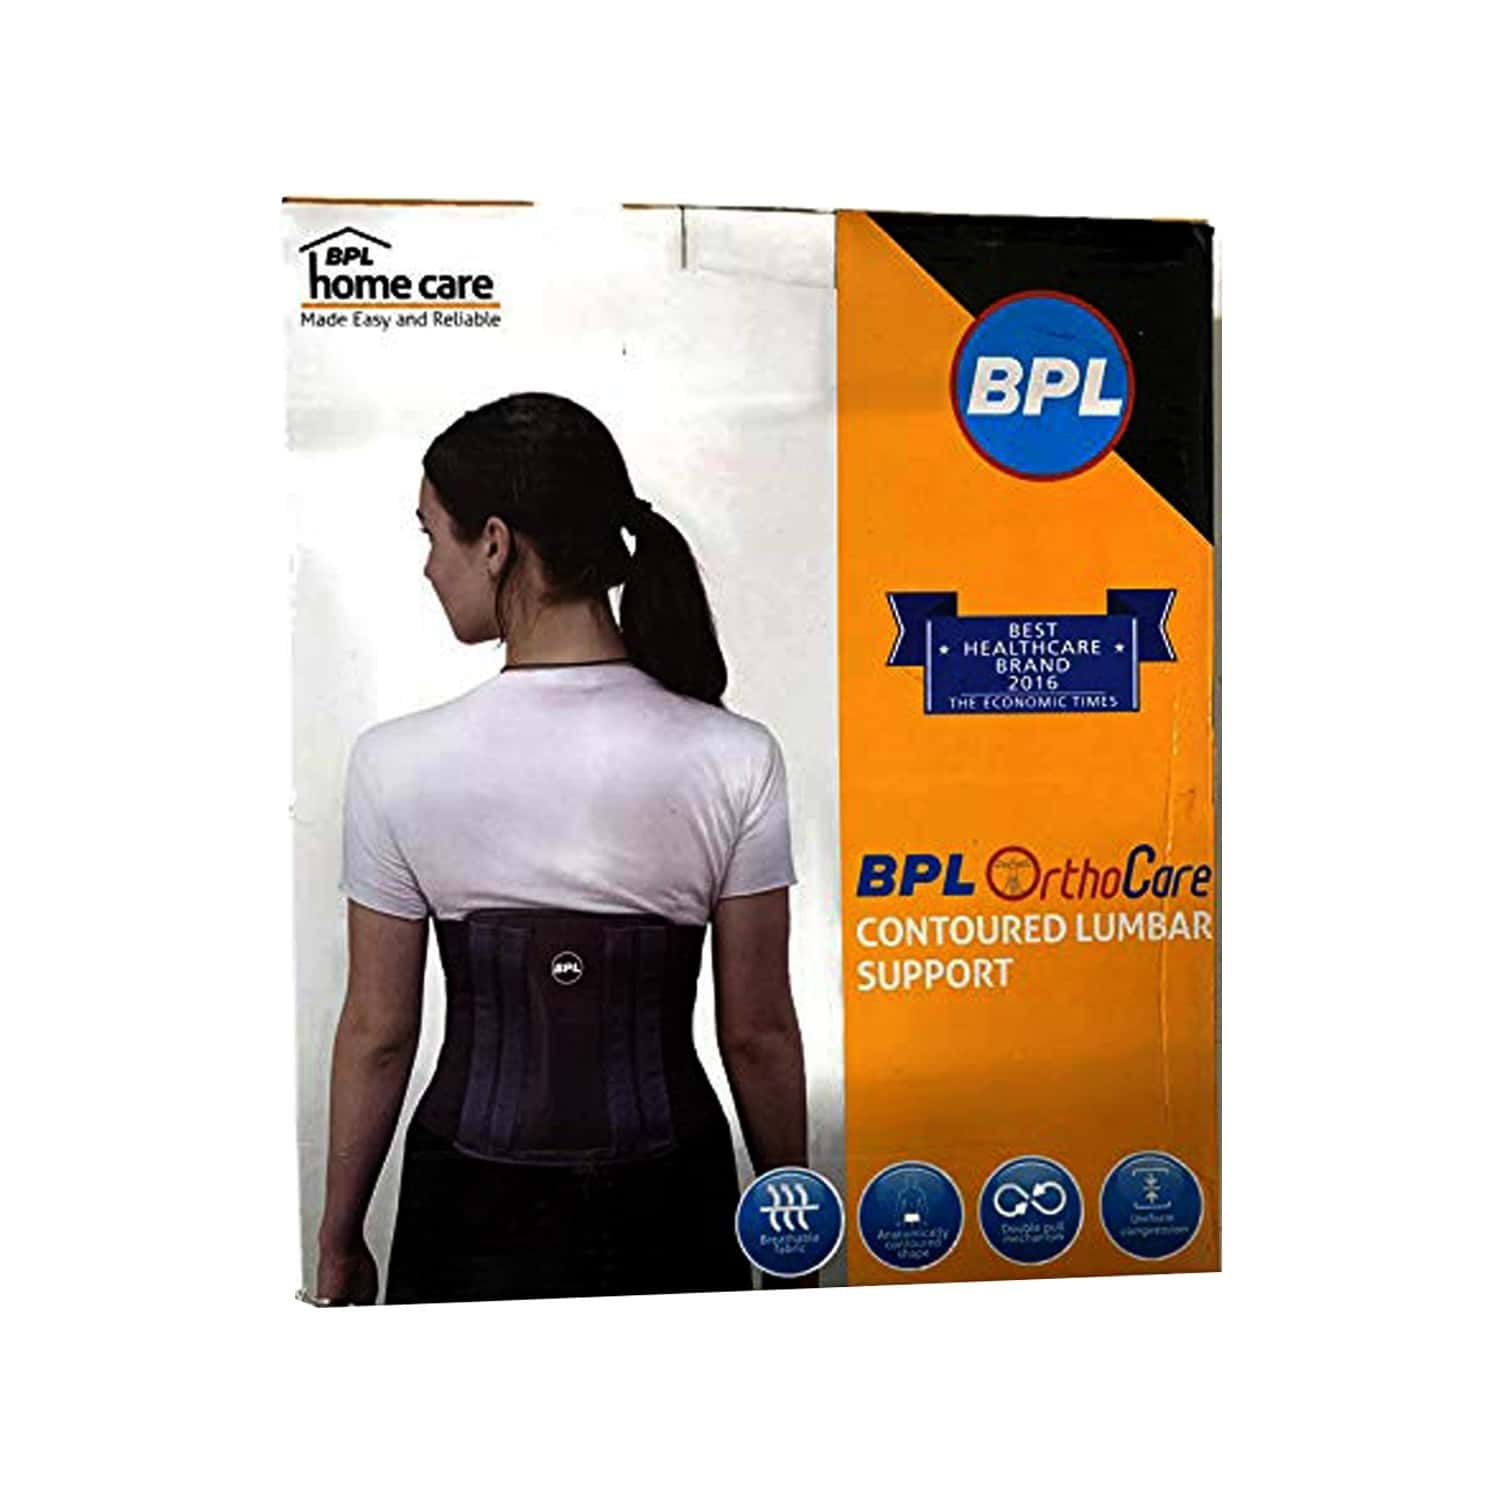 Bpl Orthocare Contoured Lumbar Support Grey - Xl - 1pc